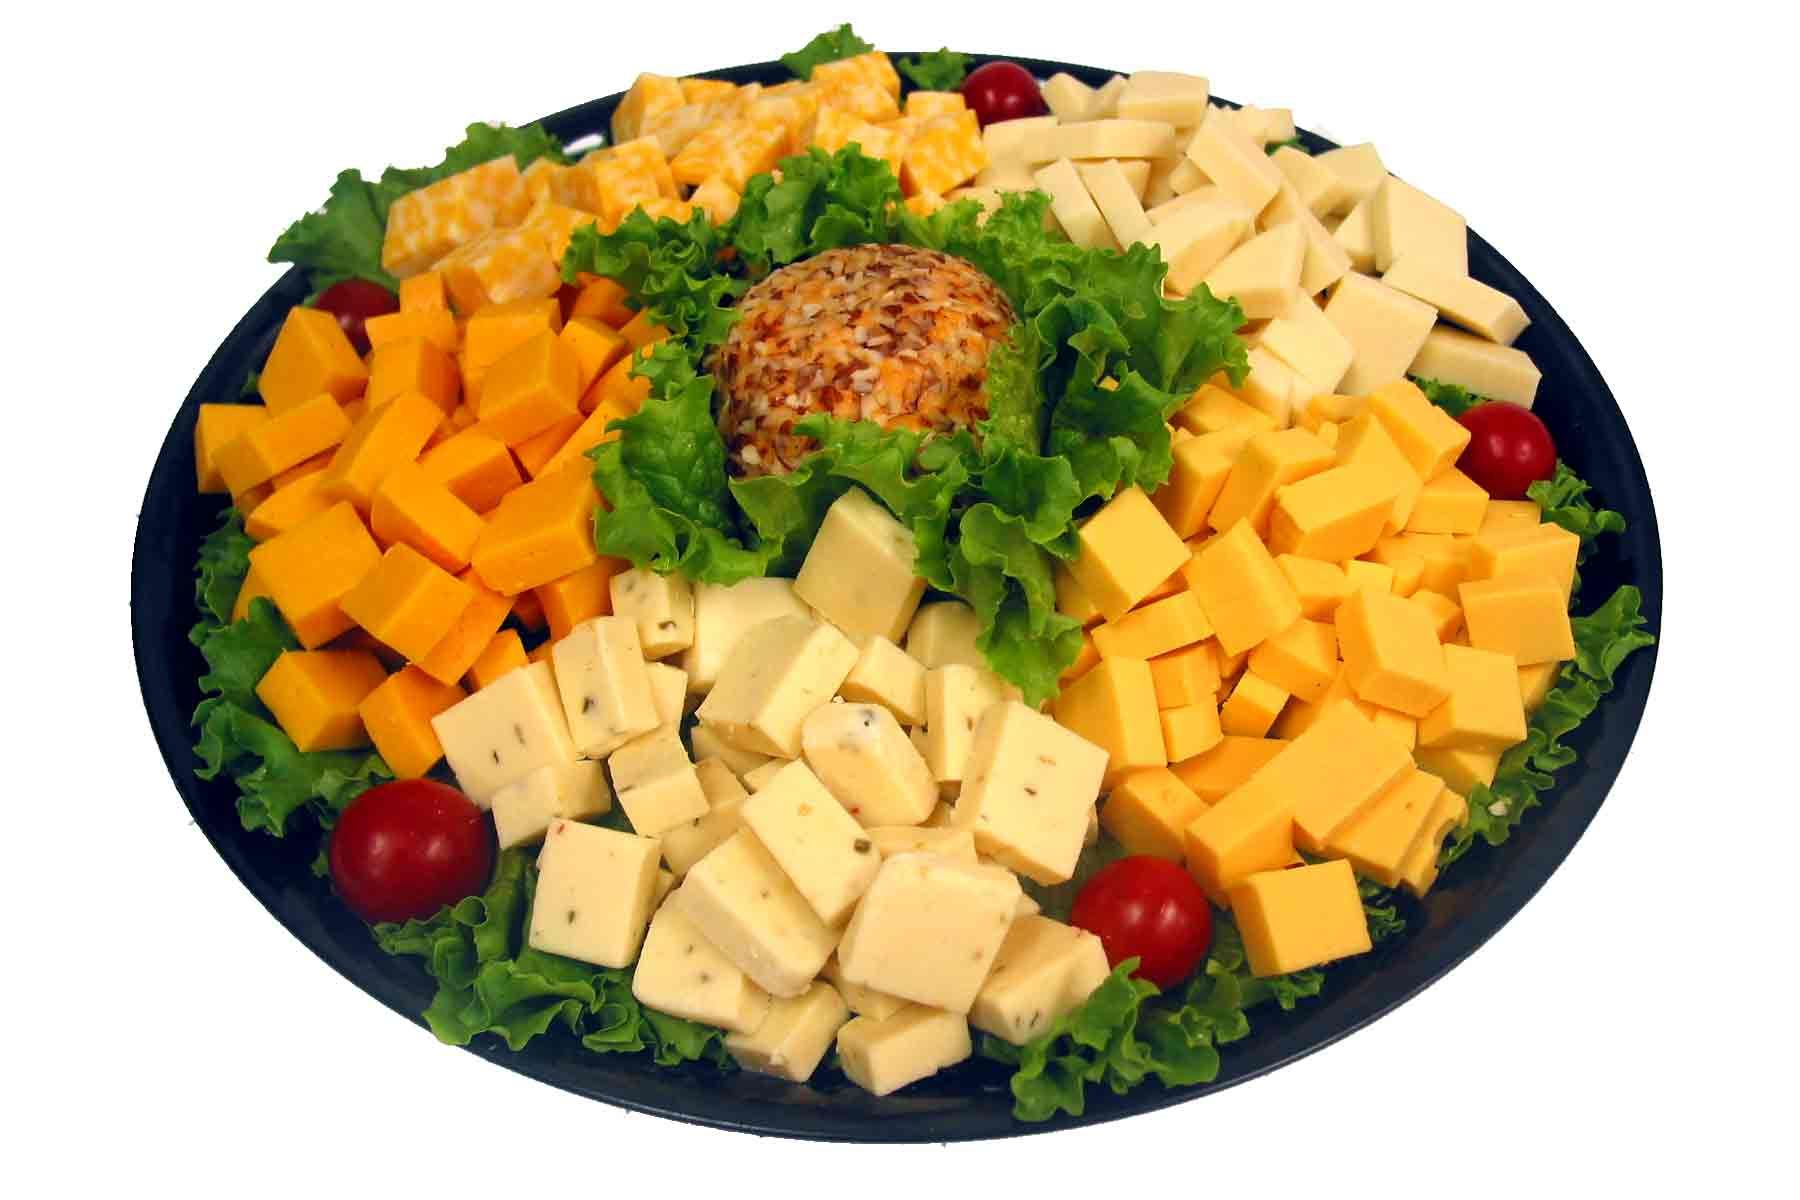 PARTY PLATTER IDEAS |     costco the best place for party platters i